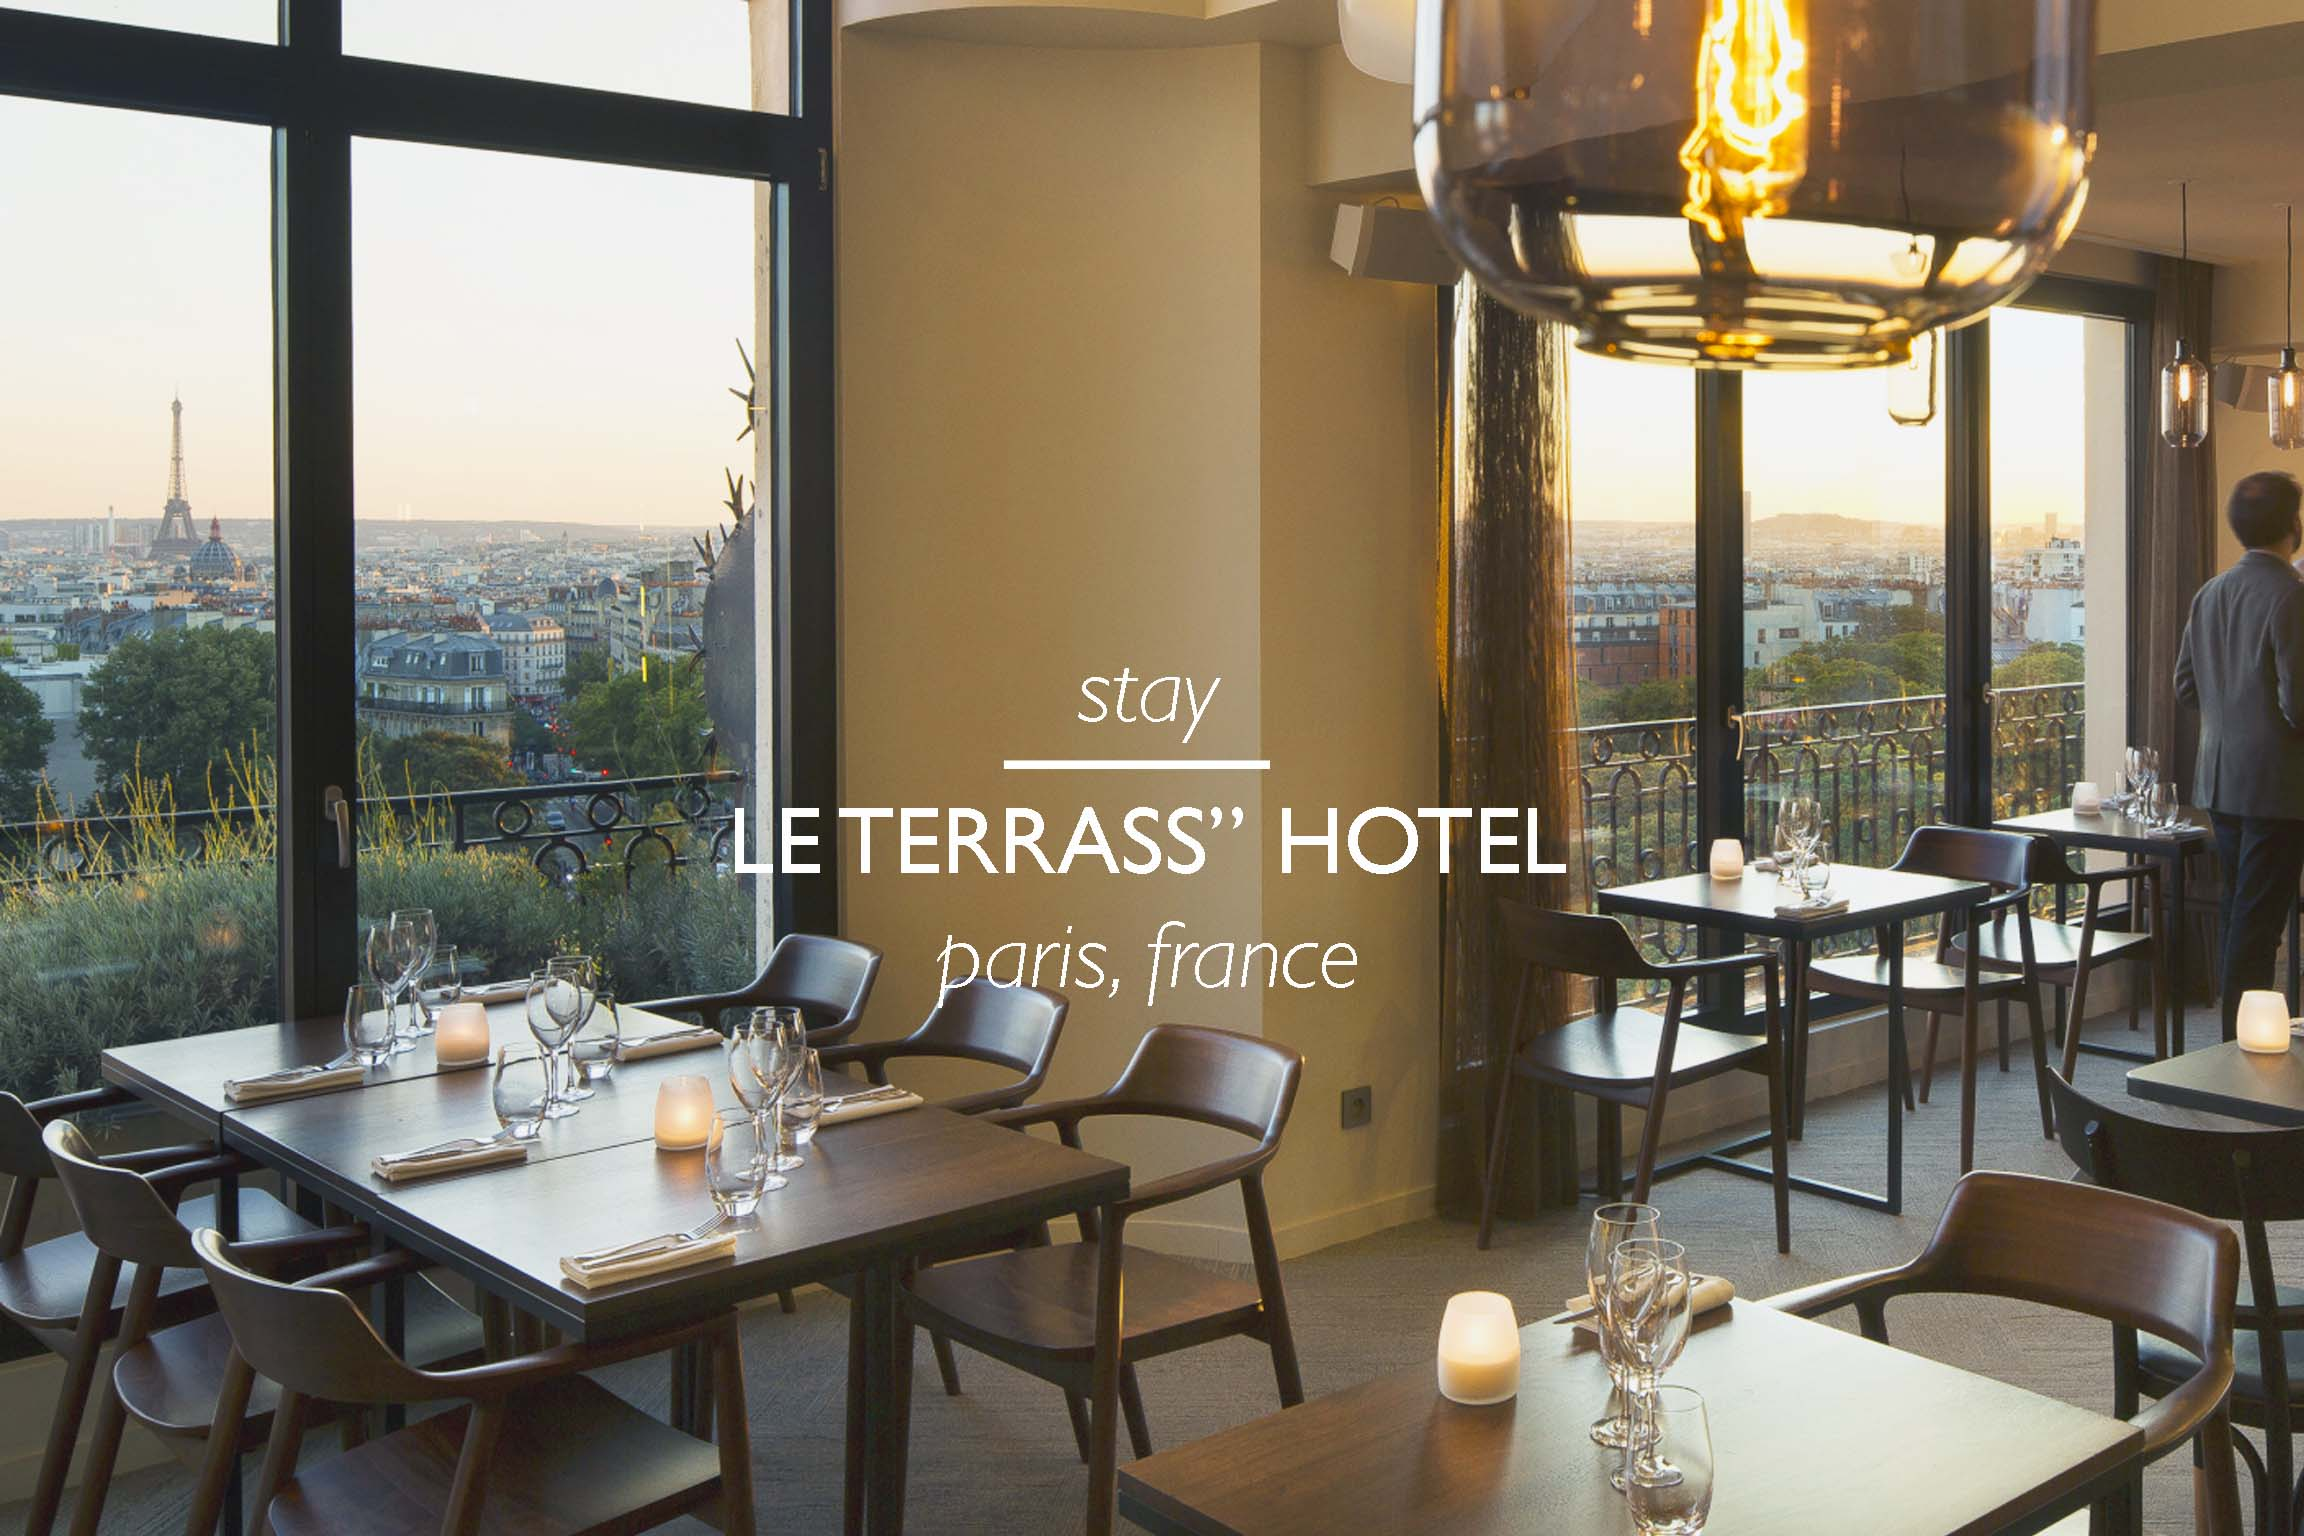 Terrasse Hotel Paris Review Le Terrass Hotel Paris France